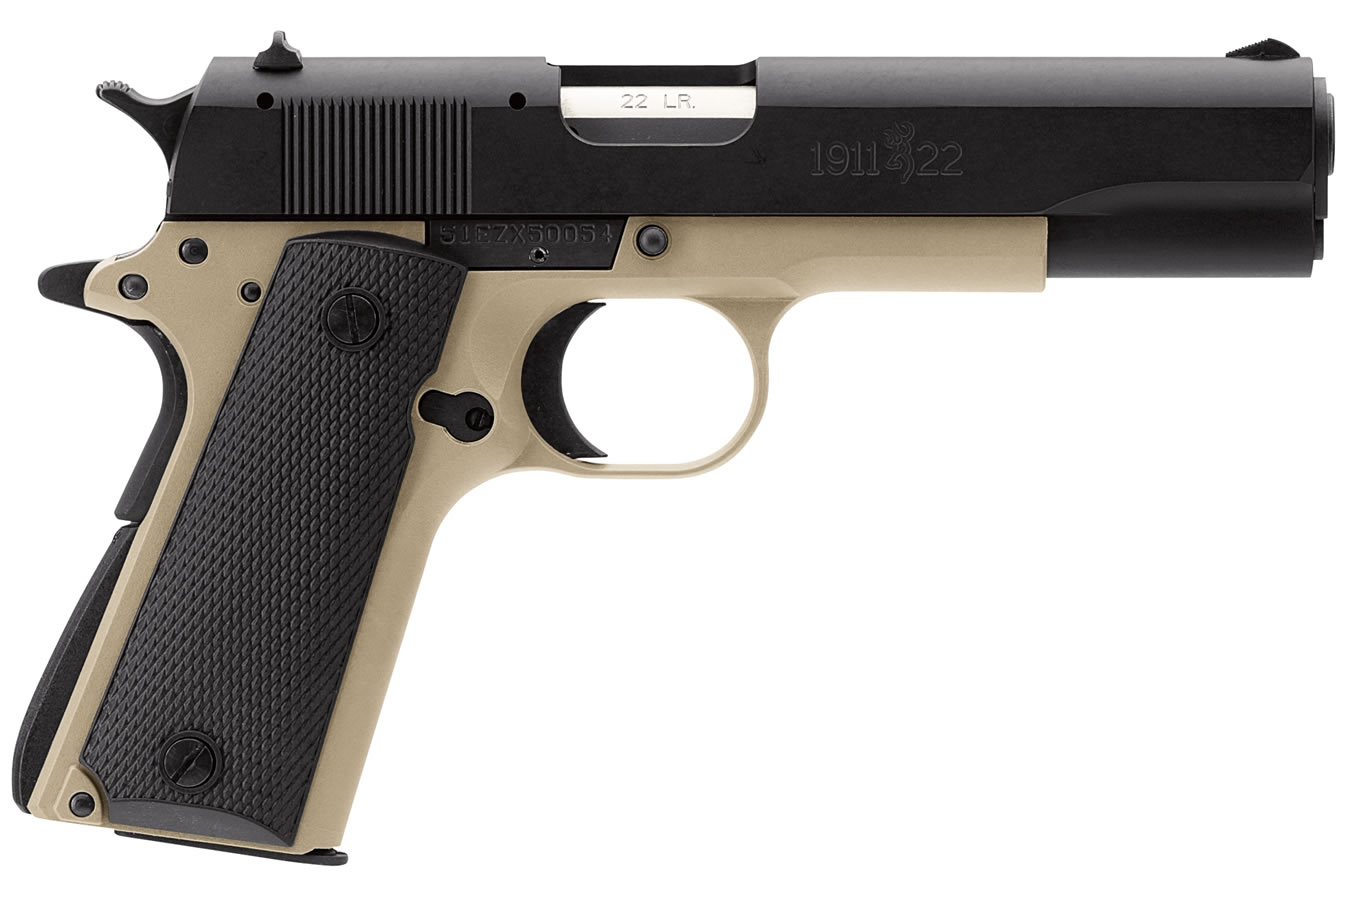 1911-22 A1 22LR FULL-SIZE DESERT TAN